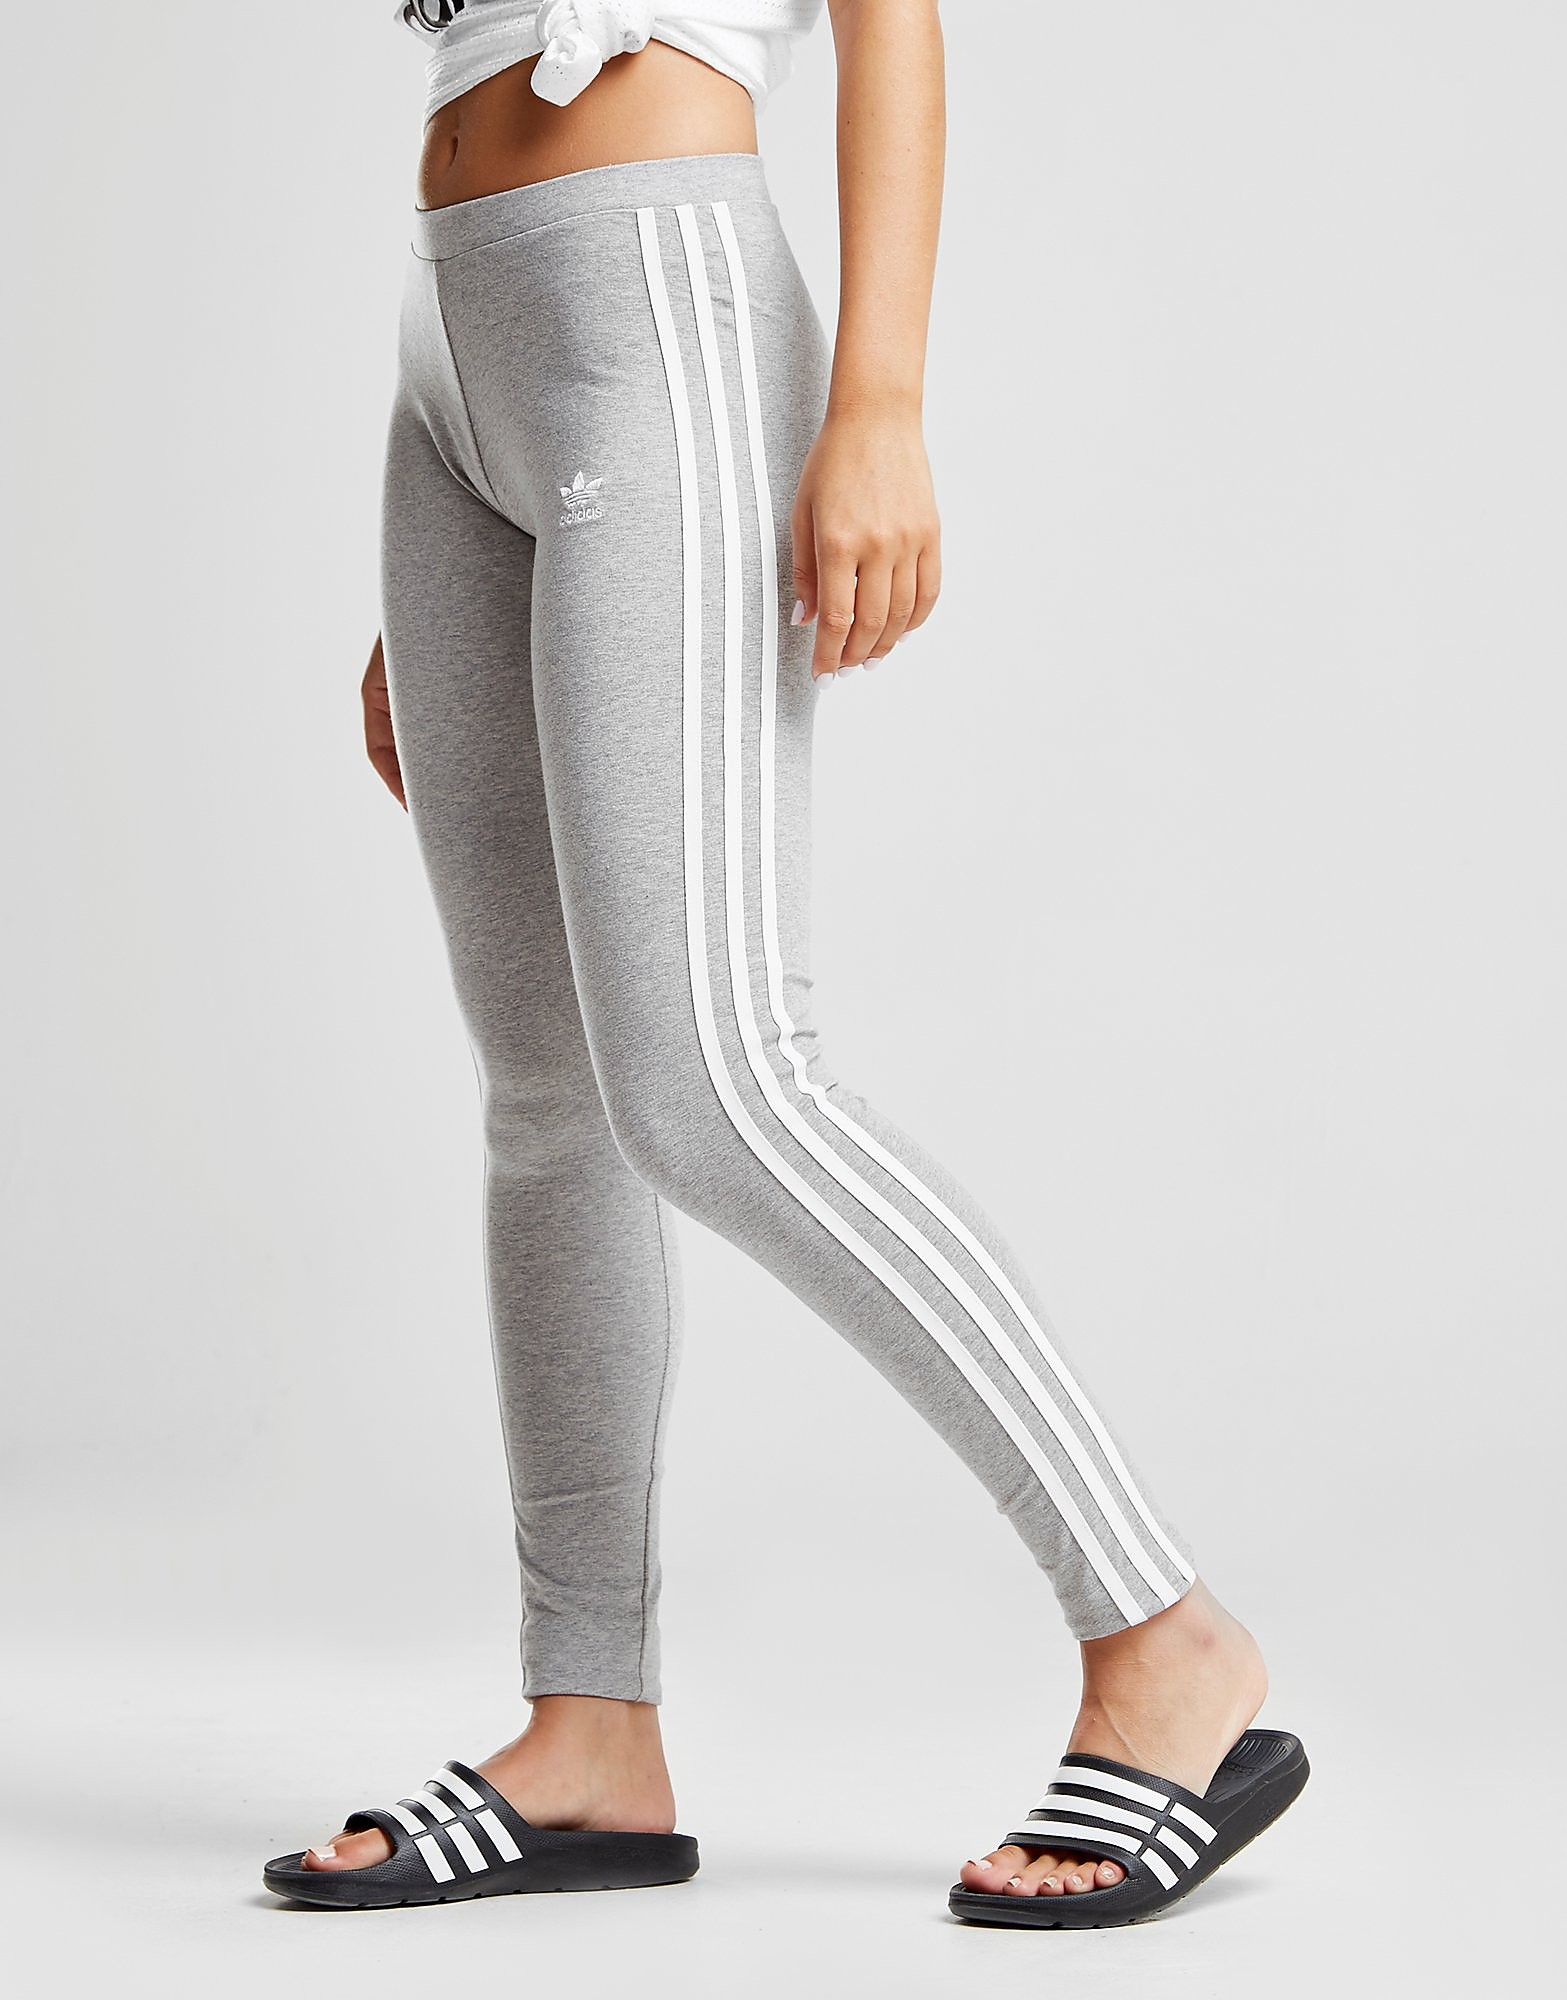 adidas Originals 3-Stripes Leggings